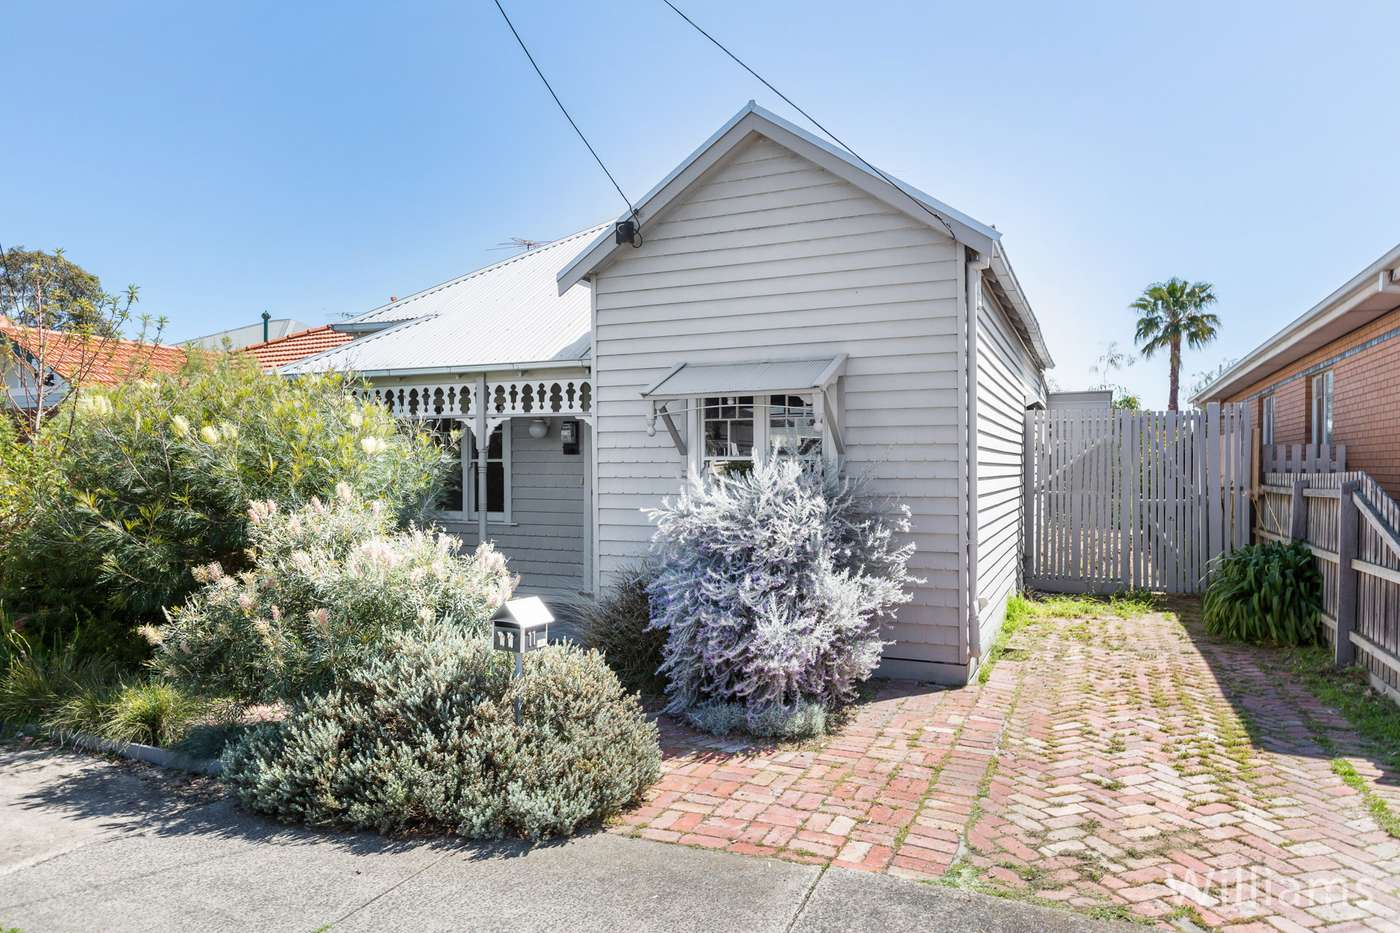 Main view of Homely house listing, 11 Mirls Street, Newport, VIC 3015